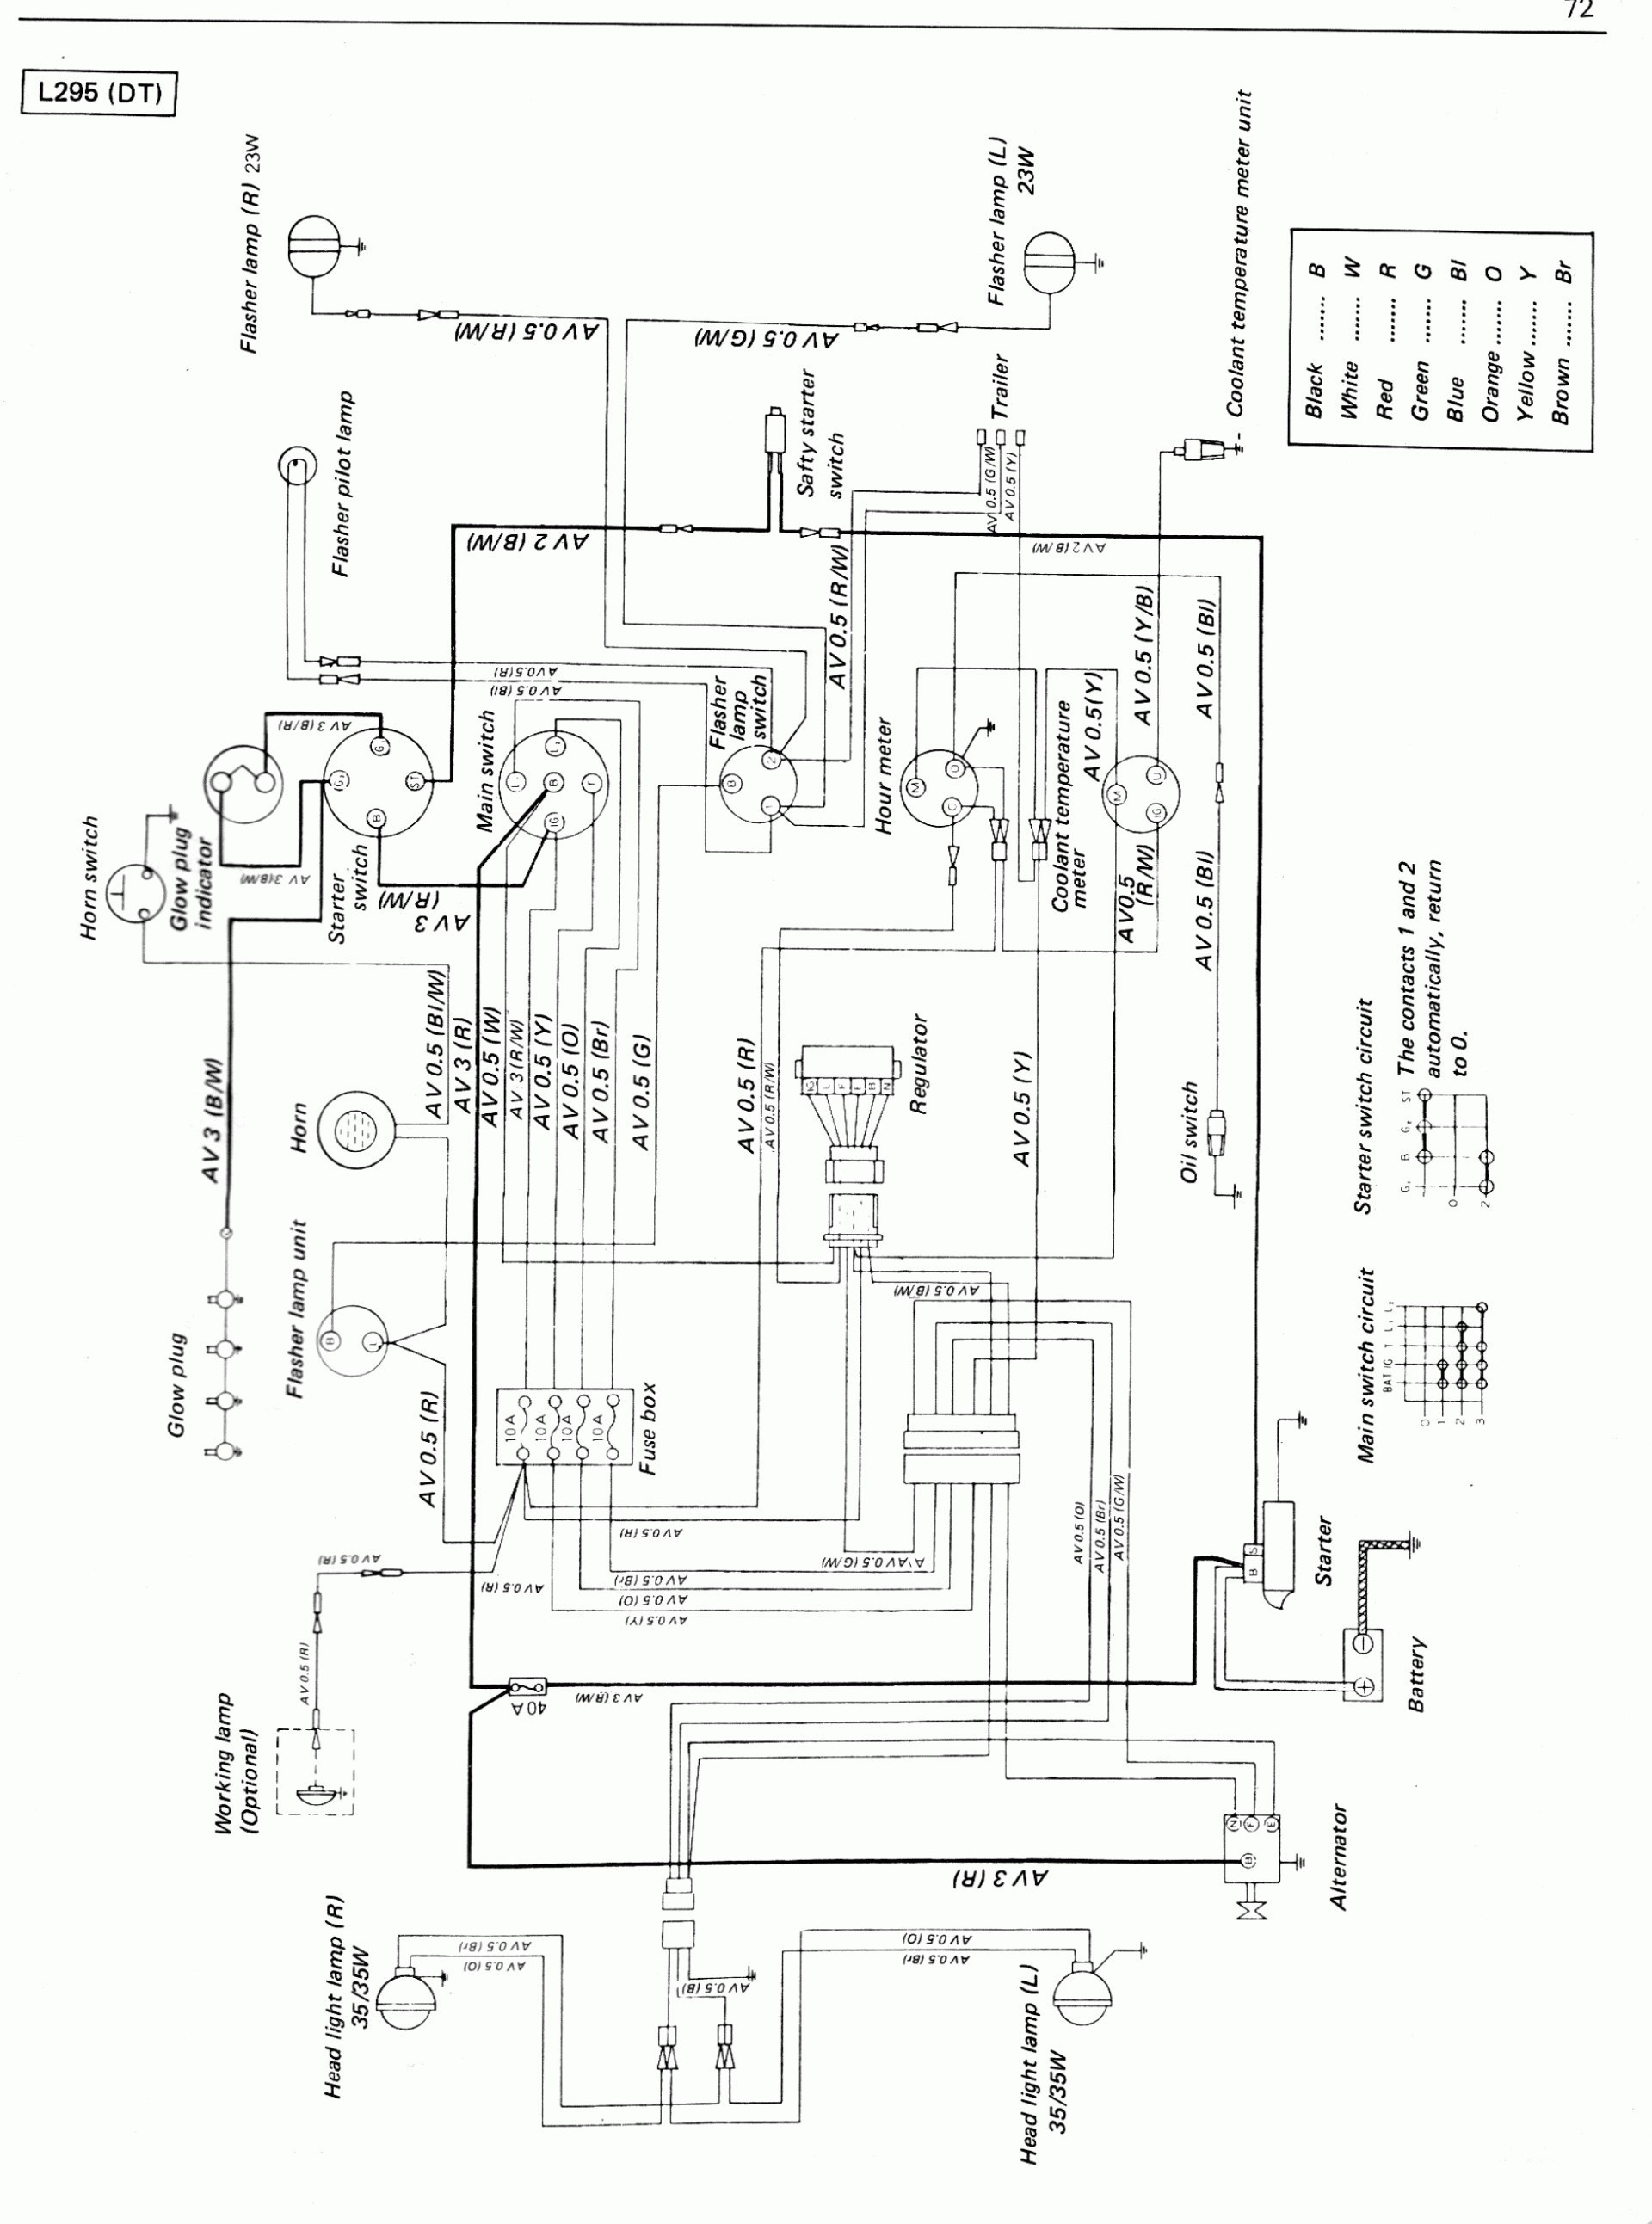 [DIAGRAM_5UK]  VH_1499] Wiring Diagram Moreover Kubota Denso Alternator Wiring Diagram  Free Diagram | Kubota Denso Alternator Wiring Diagram |  | Wigeg Ling Inifo Emba Mohammedshrine Librar Wiring 101